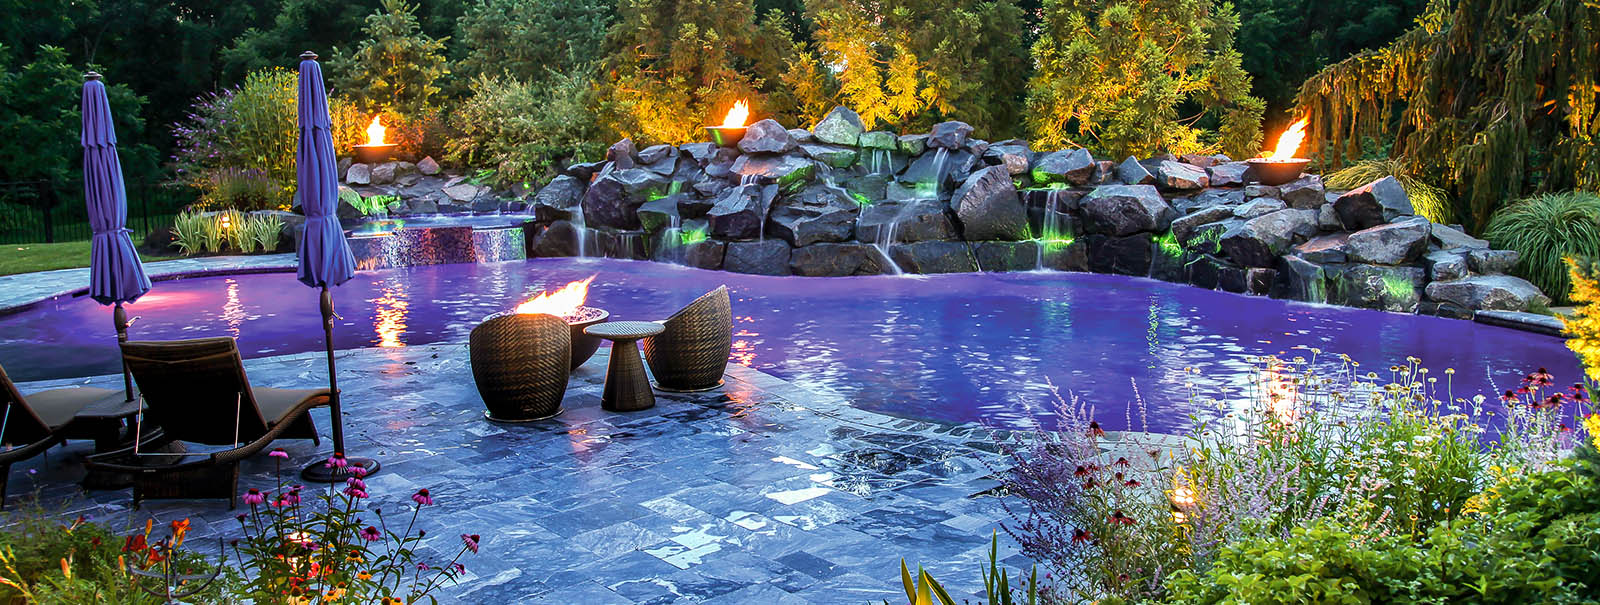 Morganville new jersey custom swimming pool builders blue - Inground swimming pools new jersey ...